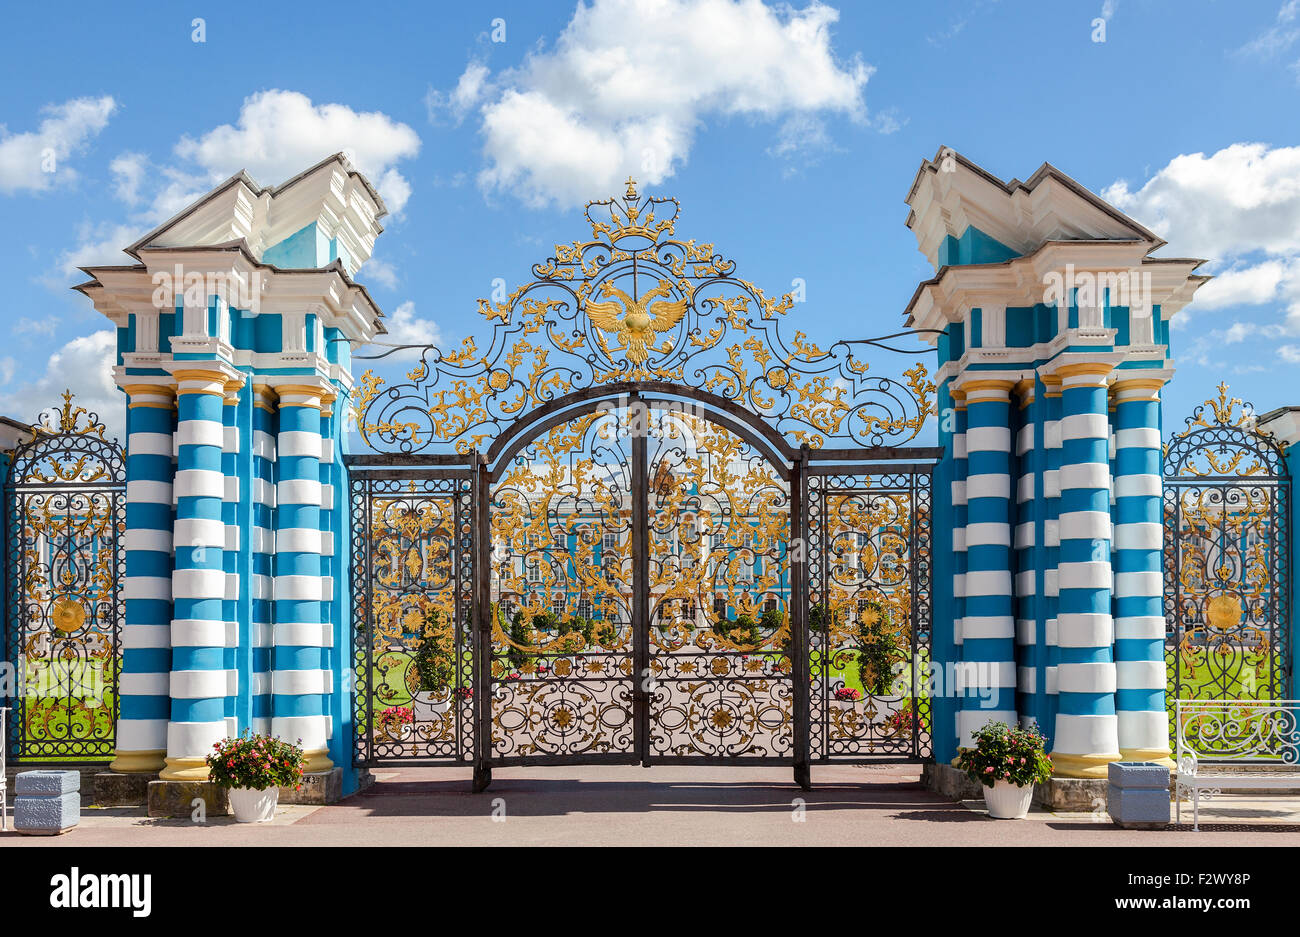 Openwork gate of Catherine Palace - the summer residence of the Russian tsars. Pushkin, Saint-Petersburg - Stock Image